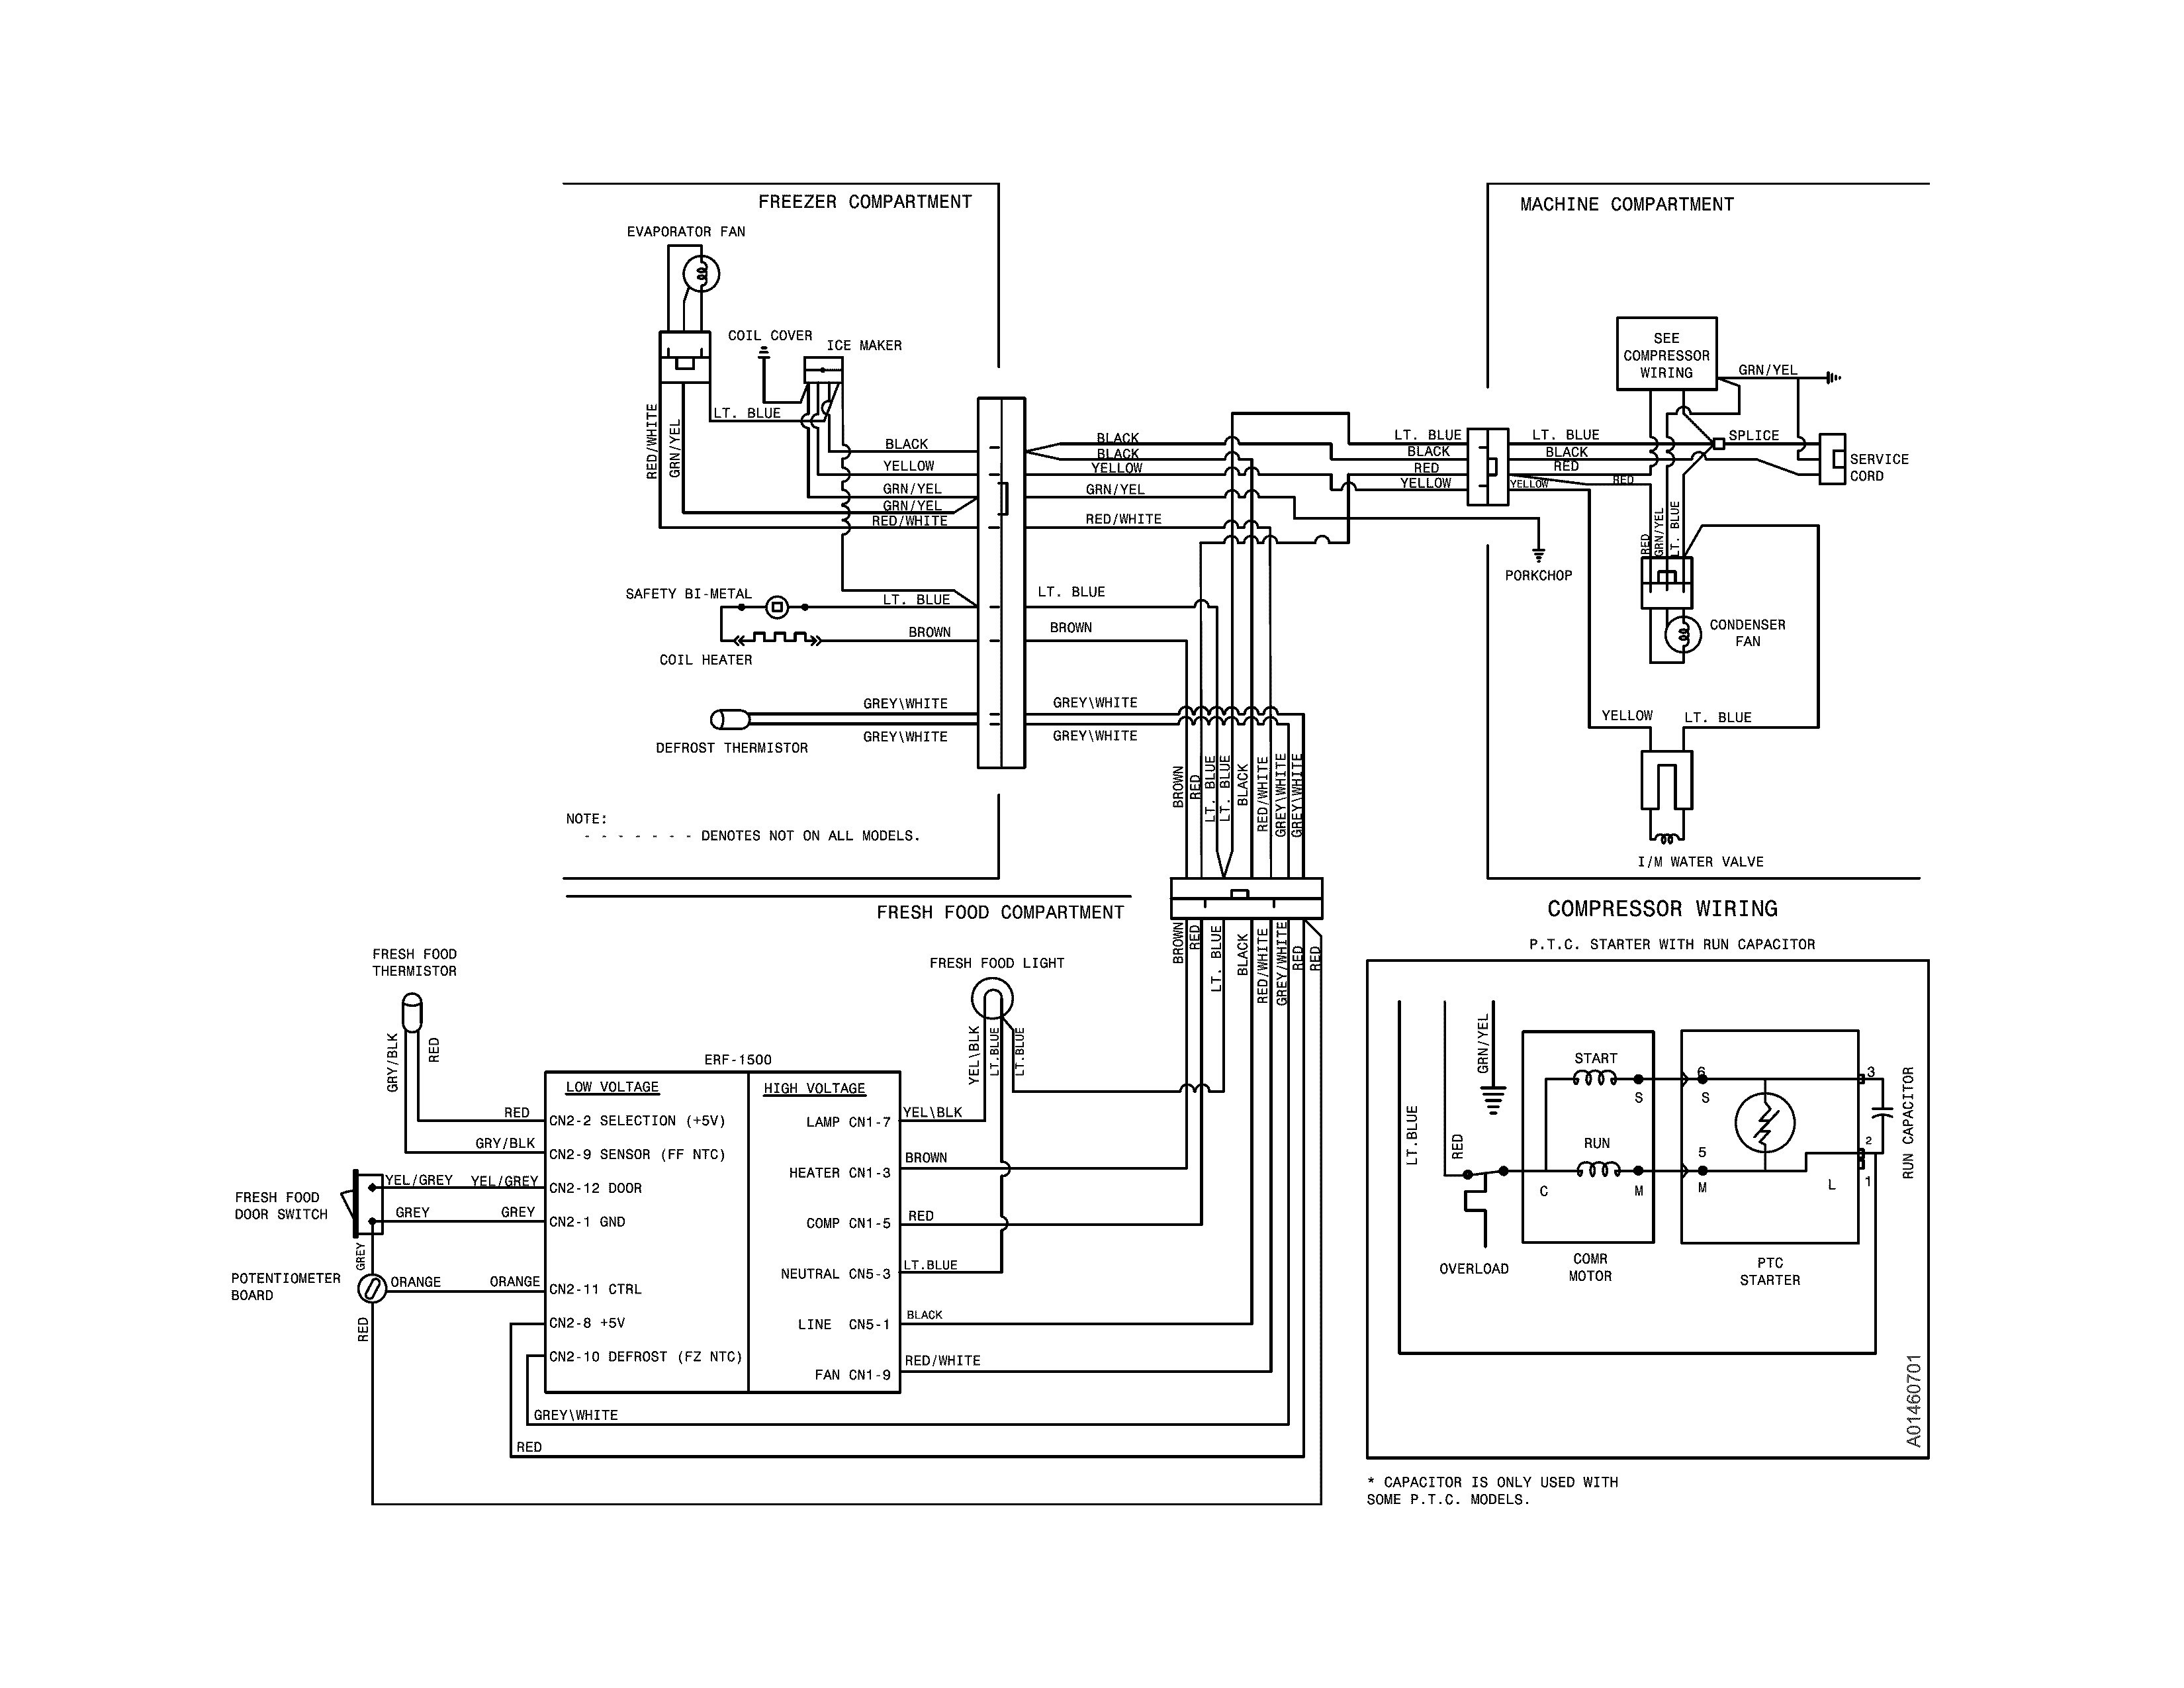 True Refrigerator Compressor Wiring Diagram | Wiring Diagram - Refrigerator Compressor Wiring Diagram